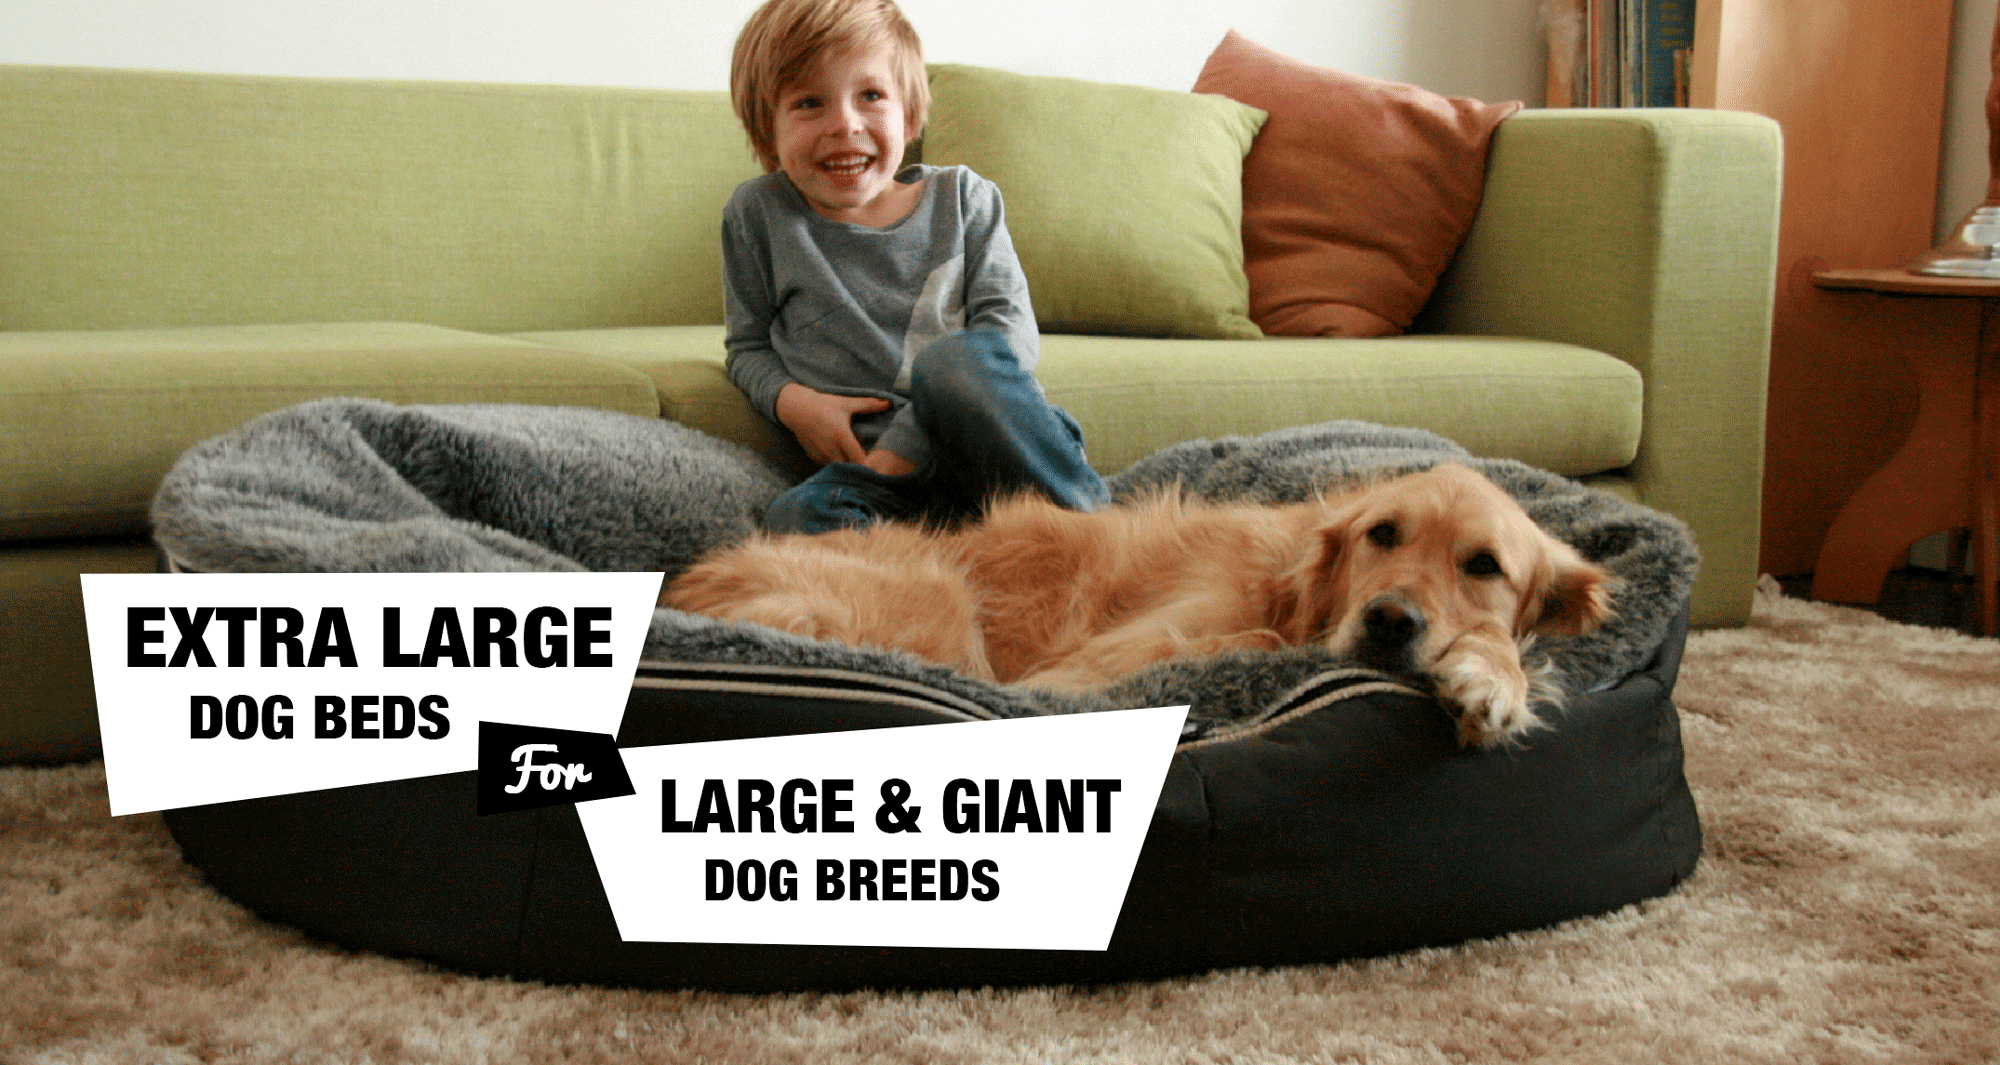 6 extra large dog beds for xl/xxl dog breeds reviewed